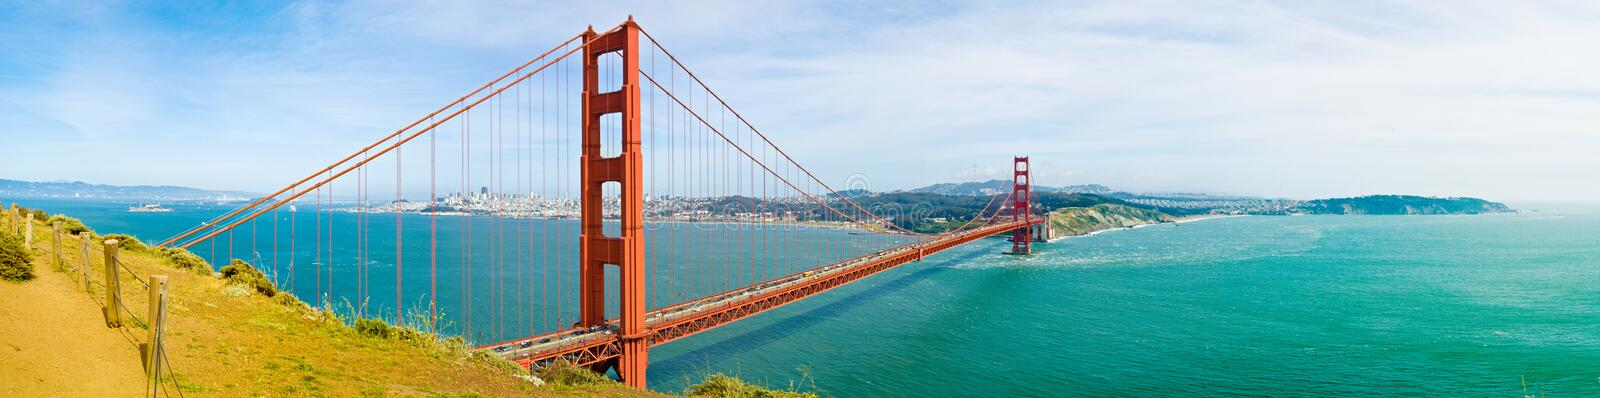 San Francisco golden gate bridge lizenzfreie stockbilder